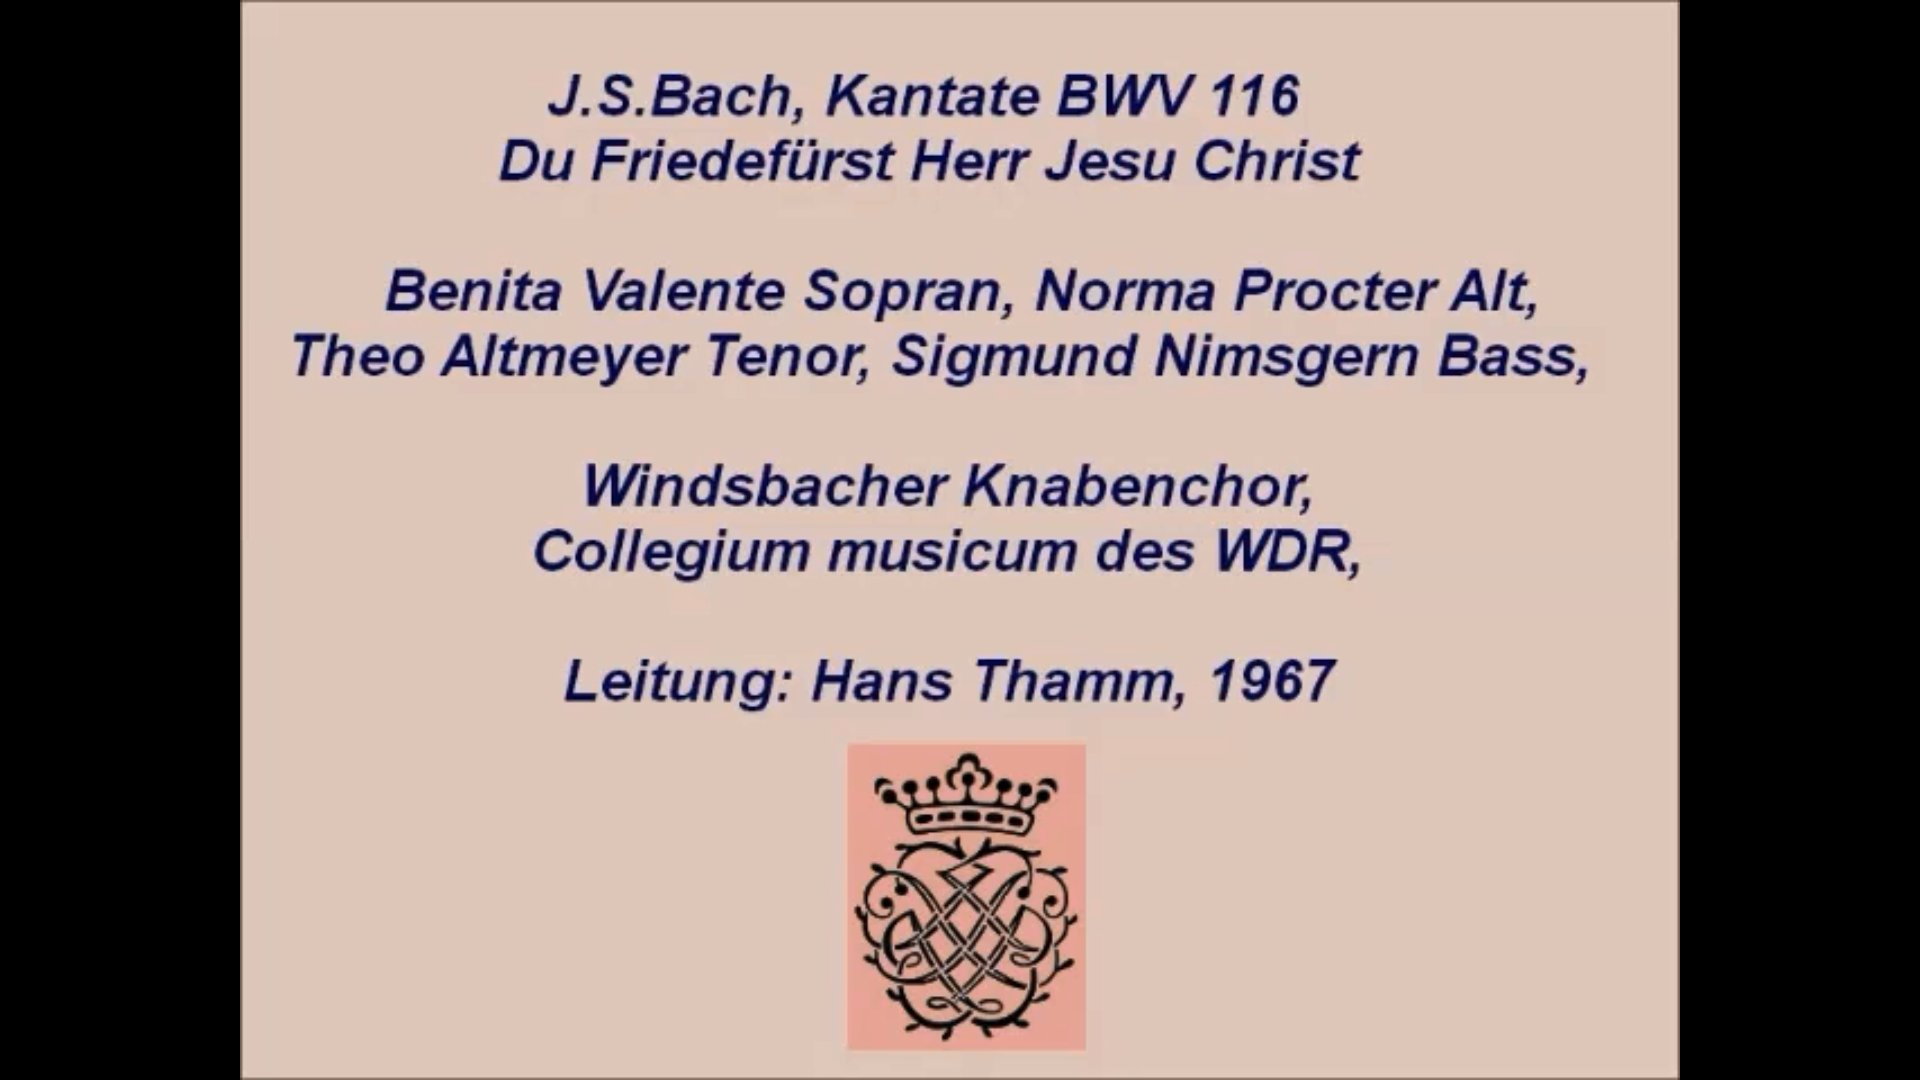 Cantata BWV 116 - Details & Discography Part 1: Complete